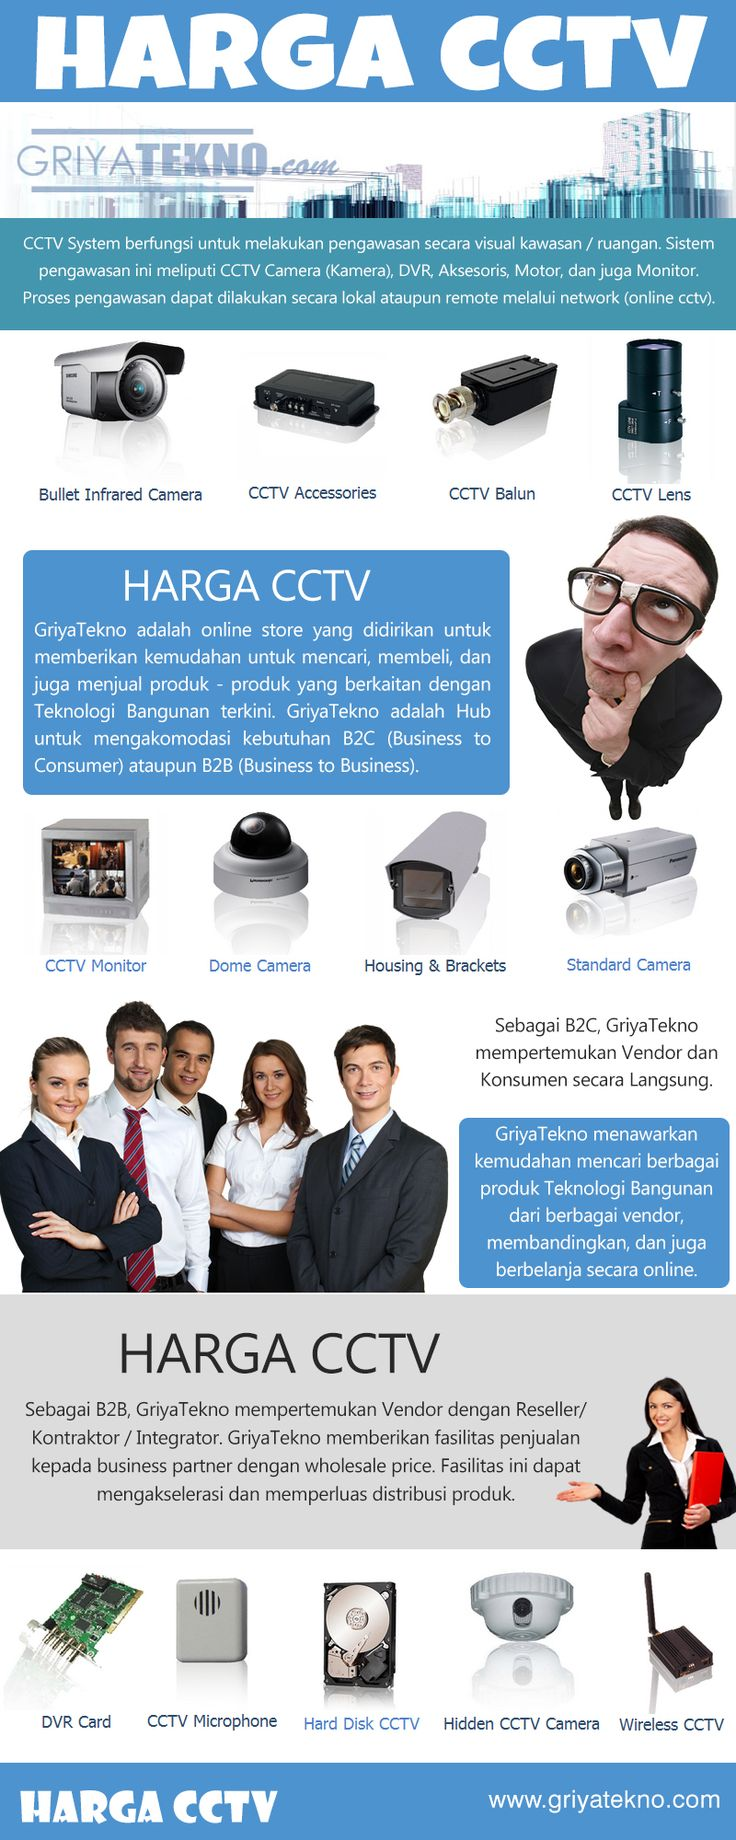 """Check out my @Behance project: """"Harga CCTV"""" https://www.behance.net/gallery/46939767/Harga-CCTV"""